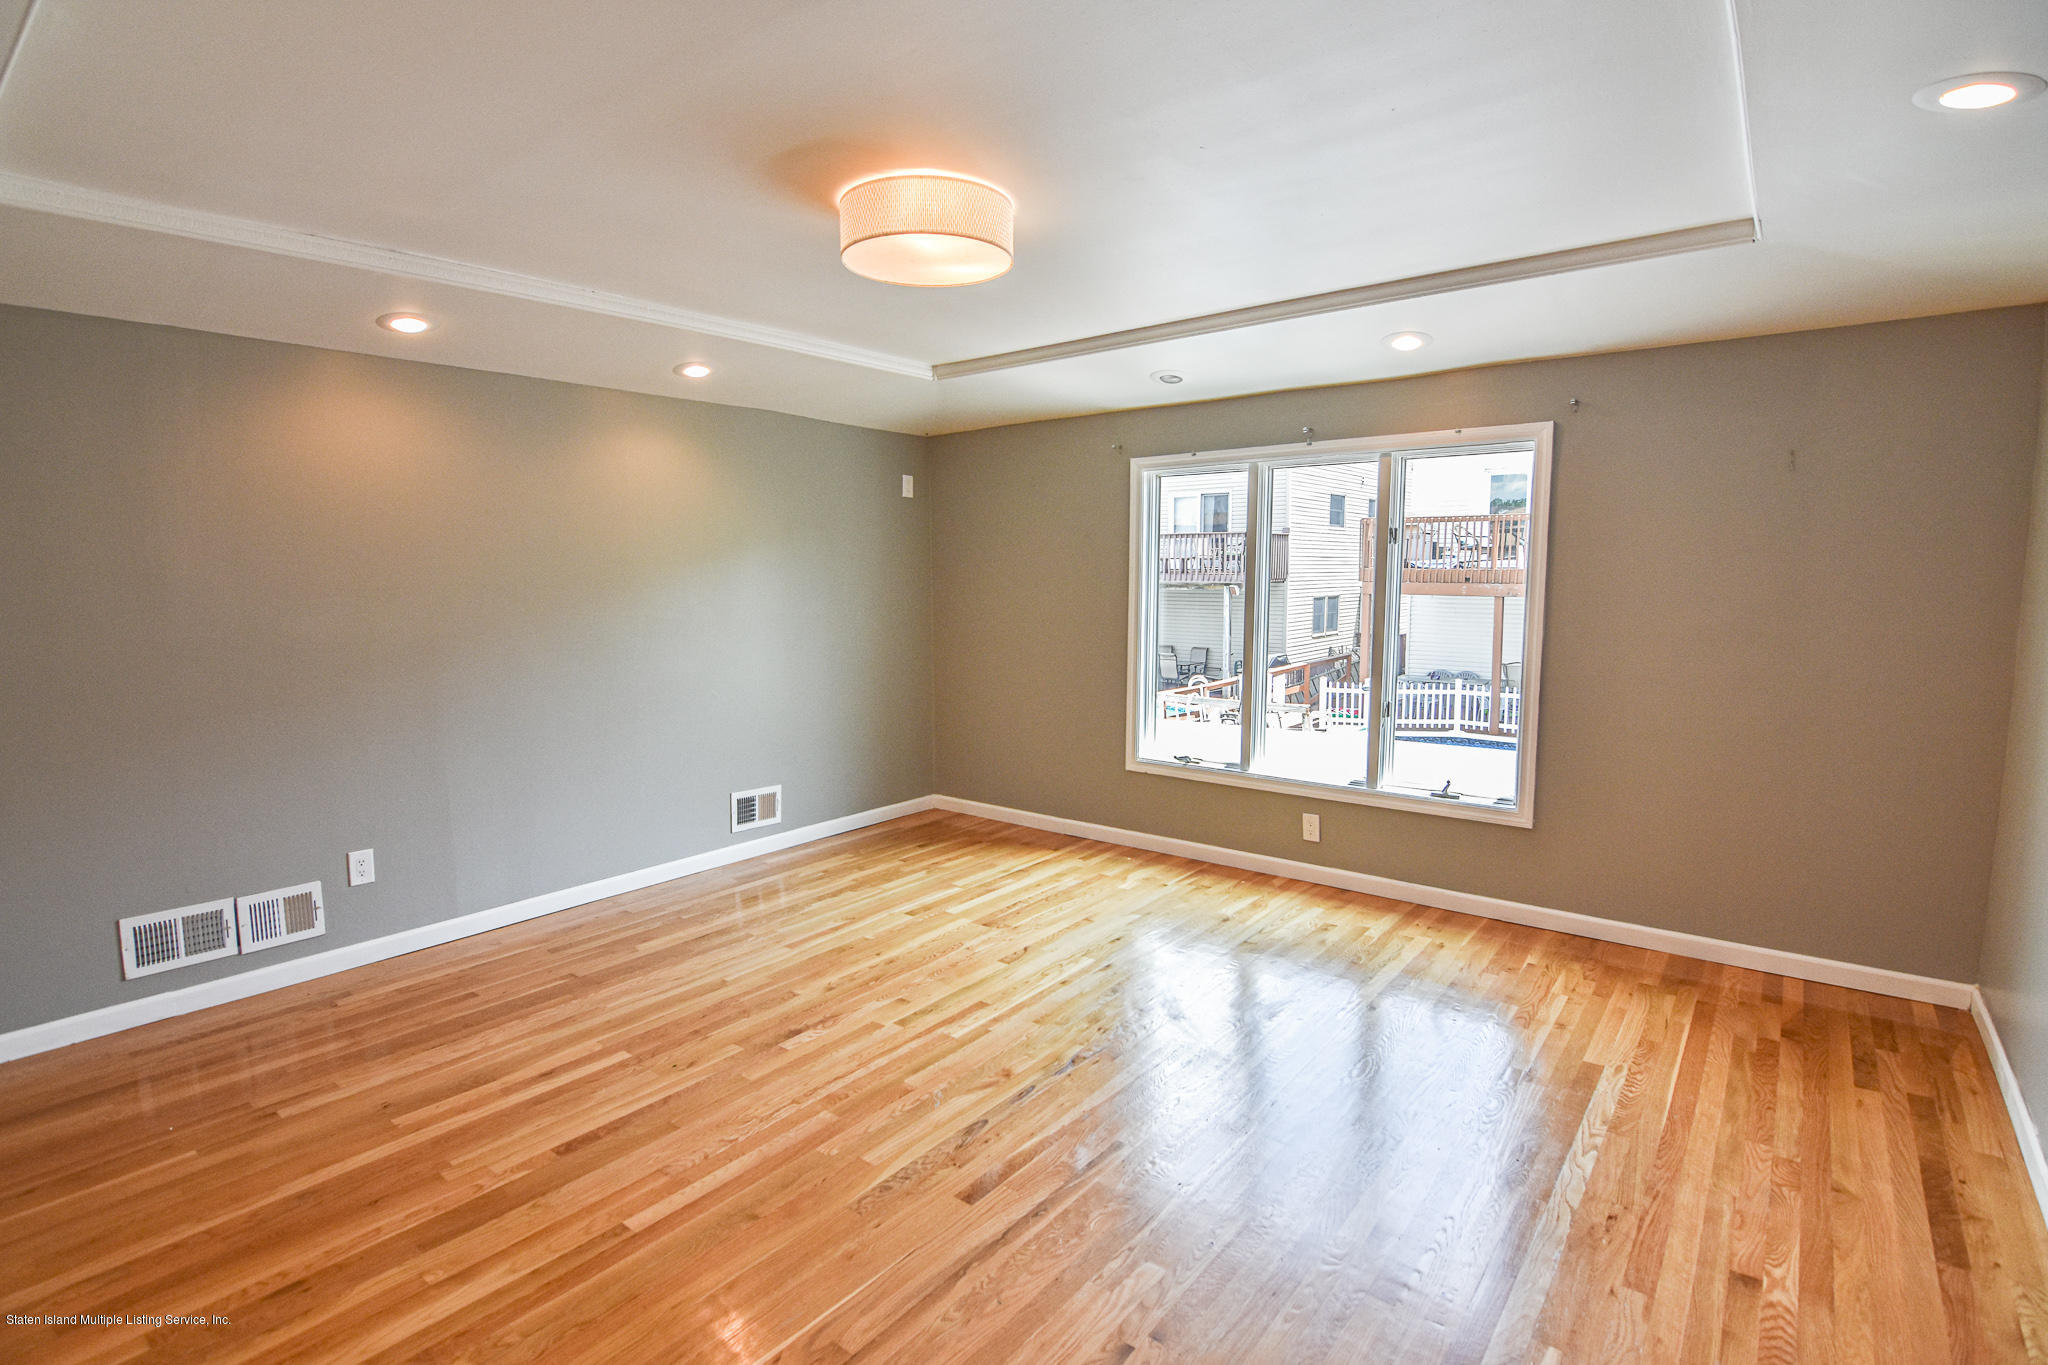 Single Family - Semi-Attached 12 Ebey Lane  Staten Island, NY 10312, MLS-1131132-13